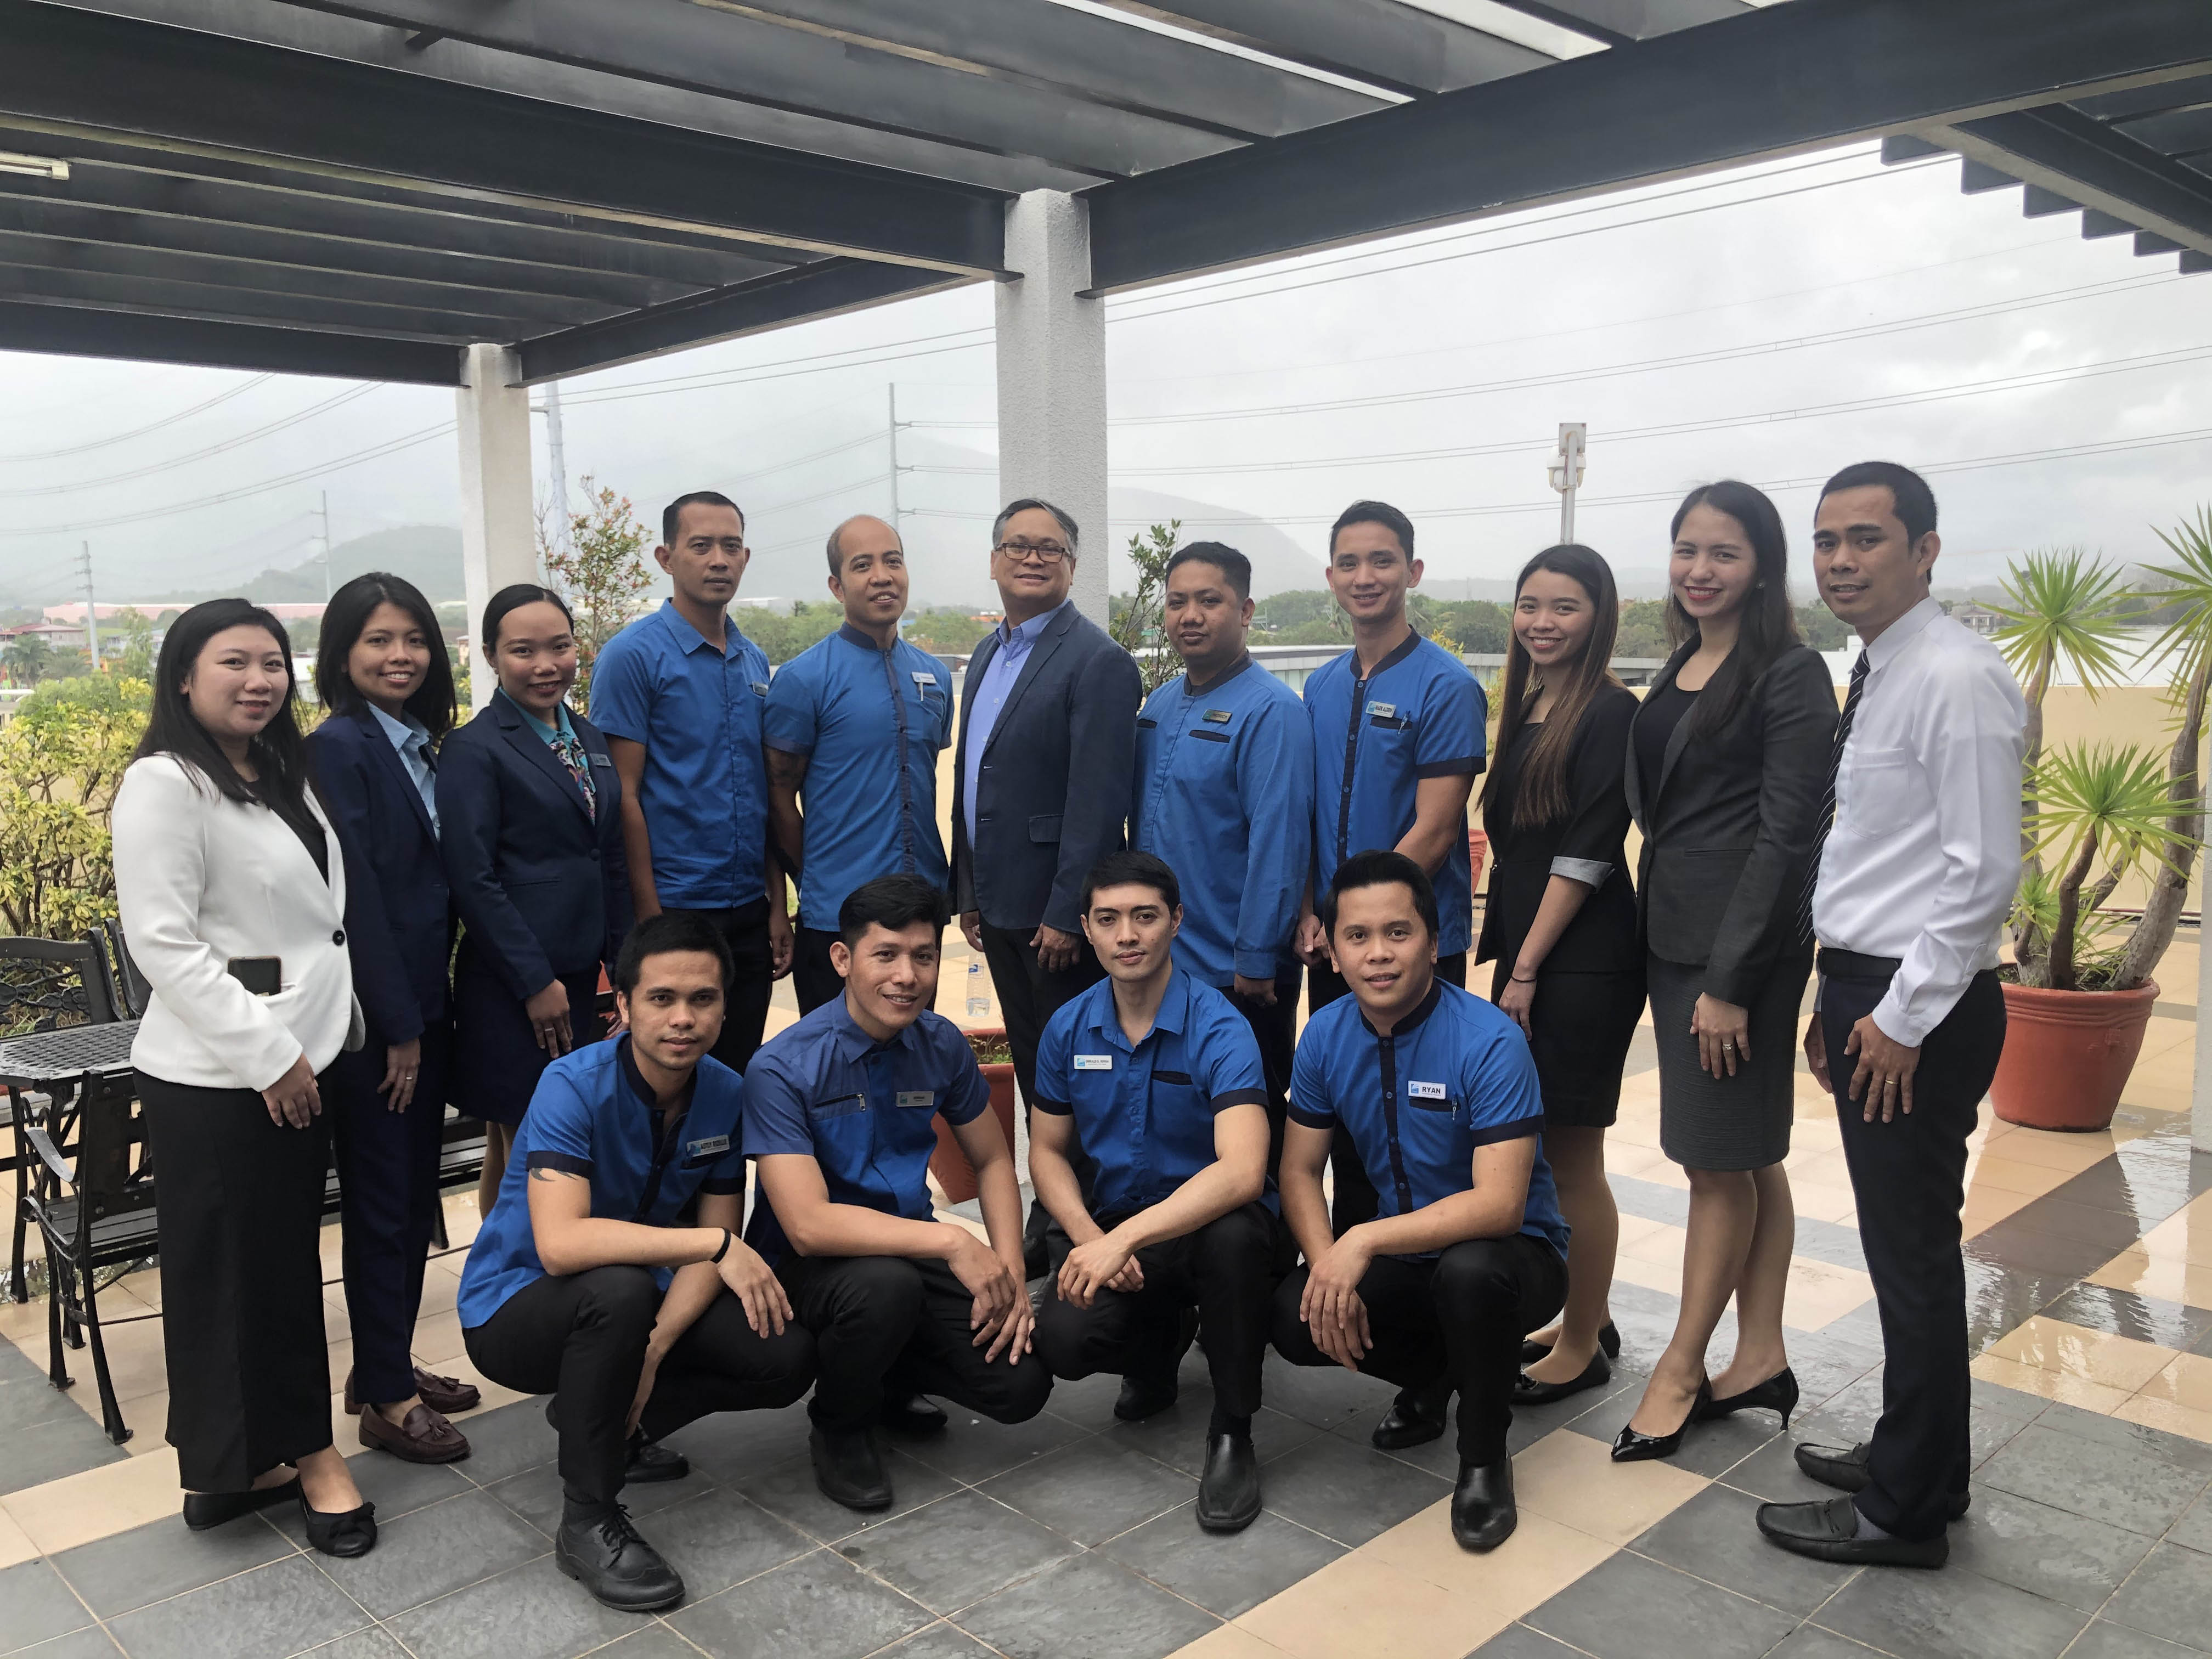 Standing, l-r: Deseree Joy Velasco, accounting; Renz Miel Manalo, accounting staff; Mary Rose Atienza, front office agent; Joseph Varela, housekeeping supervisor; Ferdinand Nario, maintenance; Norman Eusebio, general manager; Patrick Pasahol, bellman/driver; Mark Aldrin Pulido, room attendant; Mikaela Montero, sales associate; Manilyn dela Cruz, sales supervisor; and Tito Mercado, senior front office supervisor; Front row, l-r: Astly Rizelle Alidio, room attendant; Jermias Aguila, painter; Gerald Eguia, housekeeping team leader; and Ryan Cañete, room attendant